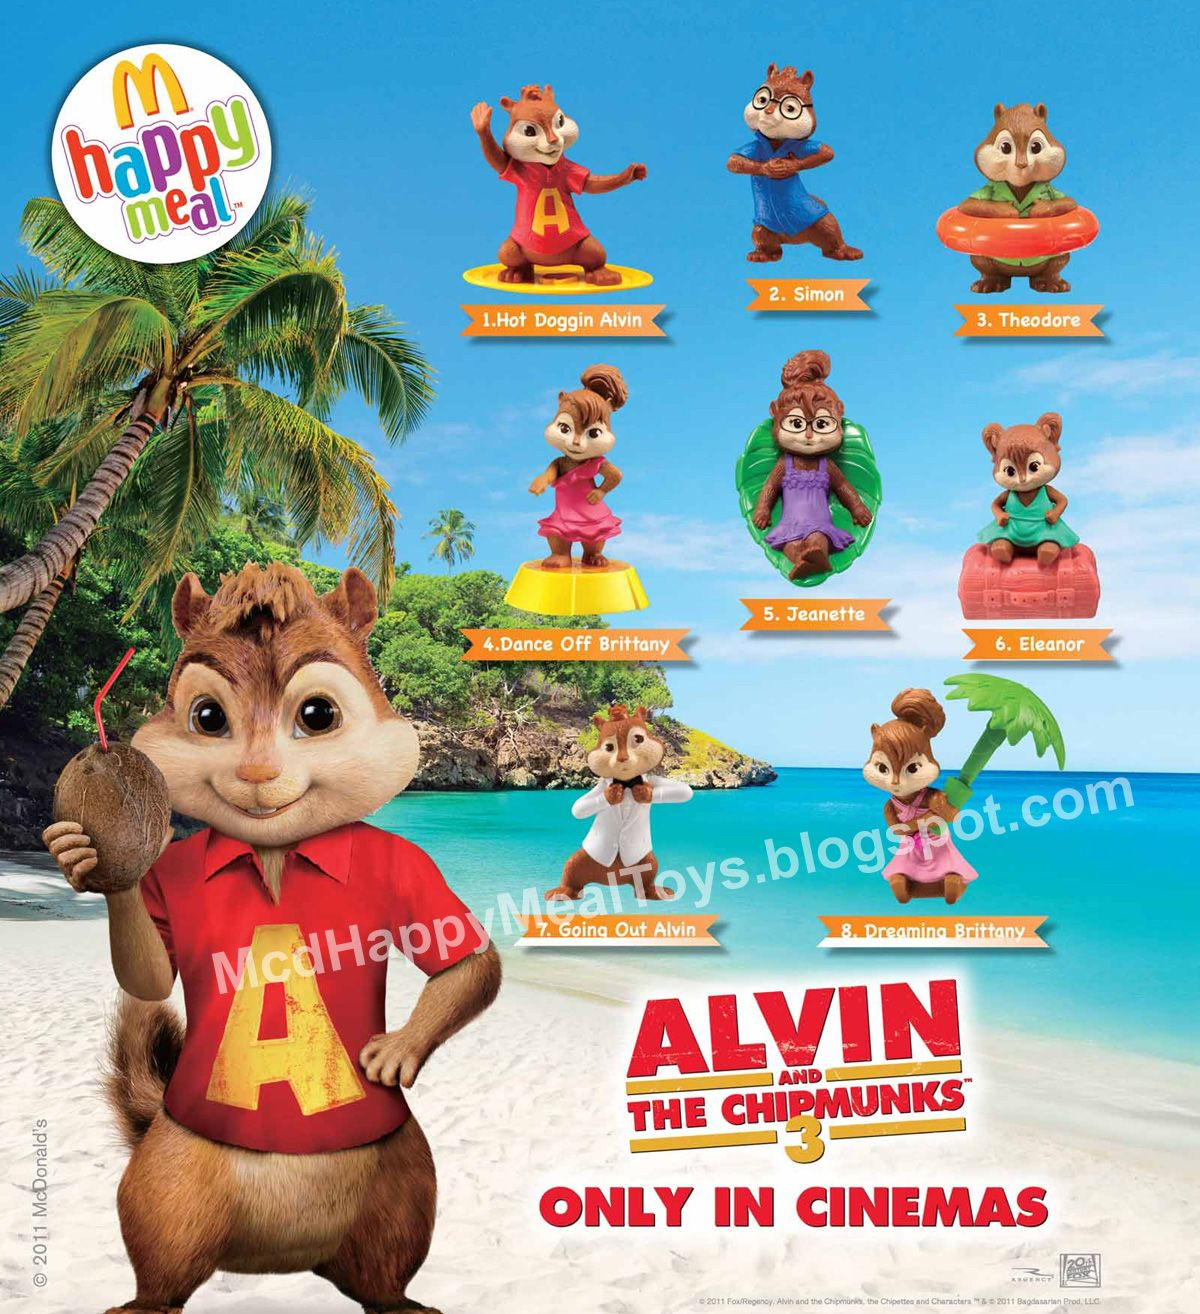 Pin By Nicole On Mcdonalds Toys Happy Meal Toys Happy Meal Alvin And The Chipmunks